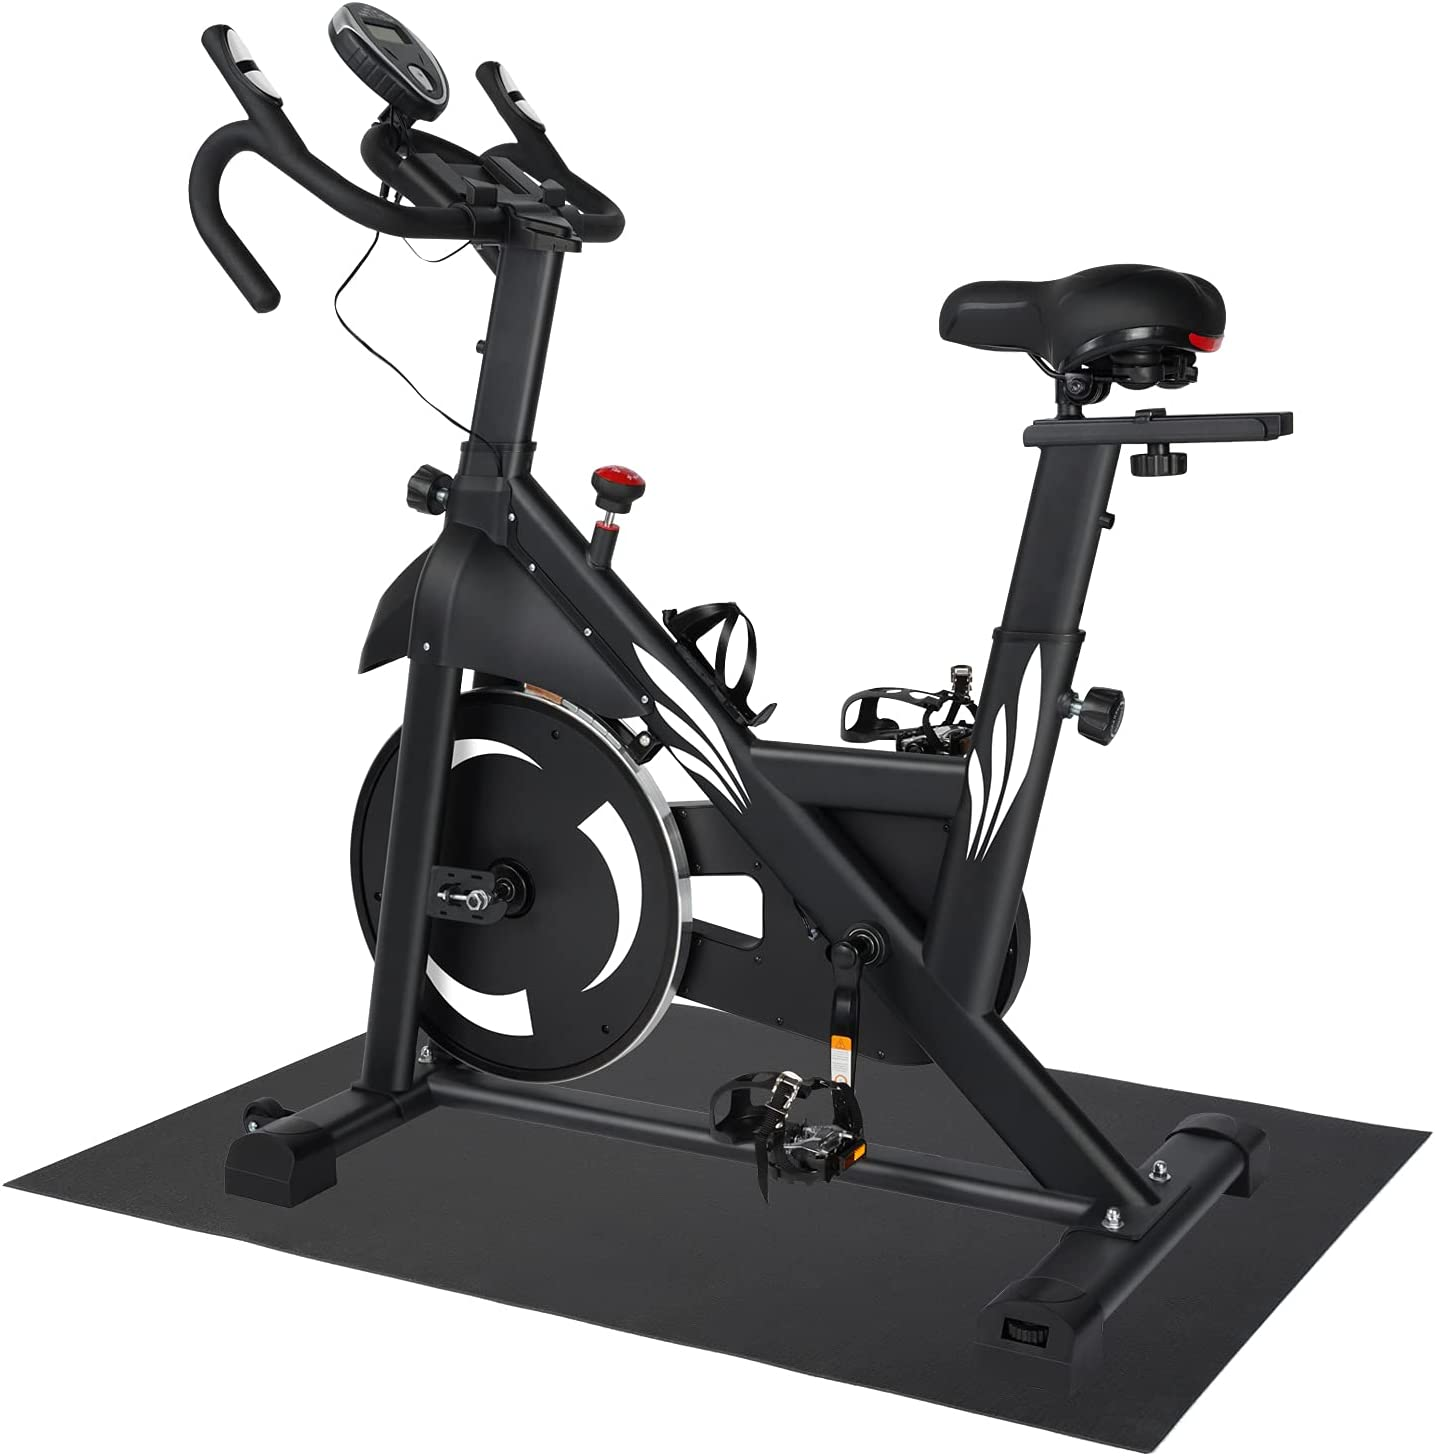 SSPHPPLIE Indoor Cycling Inexpensive Bike Arlington Mall for Stati Gym - Exercise Home